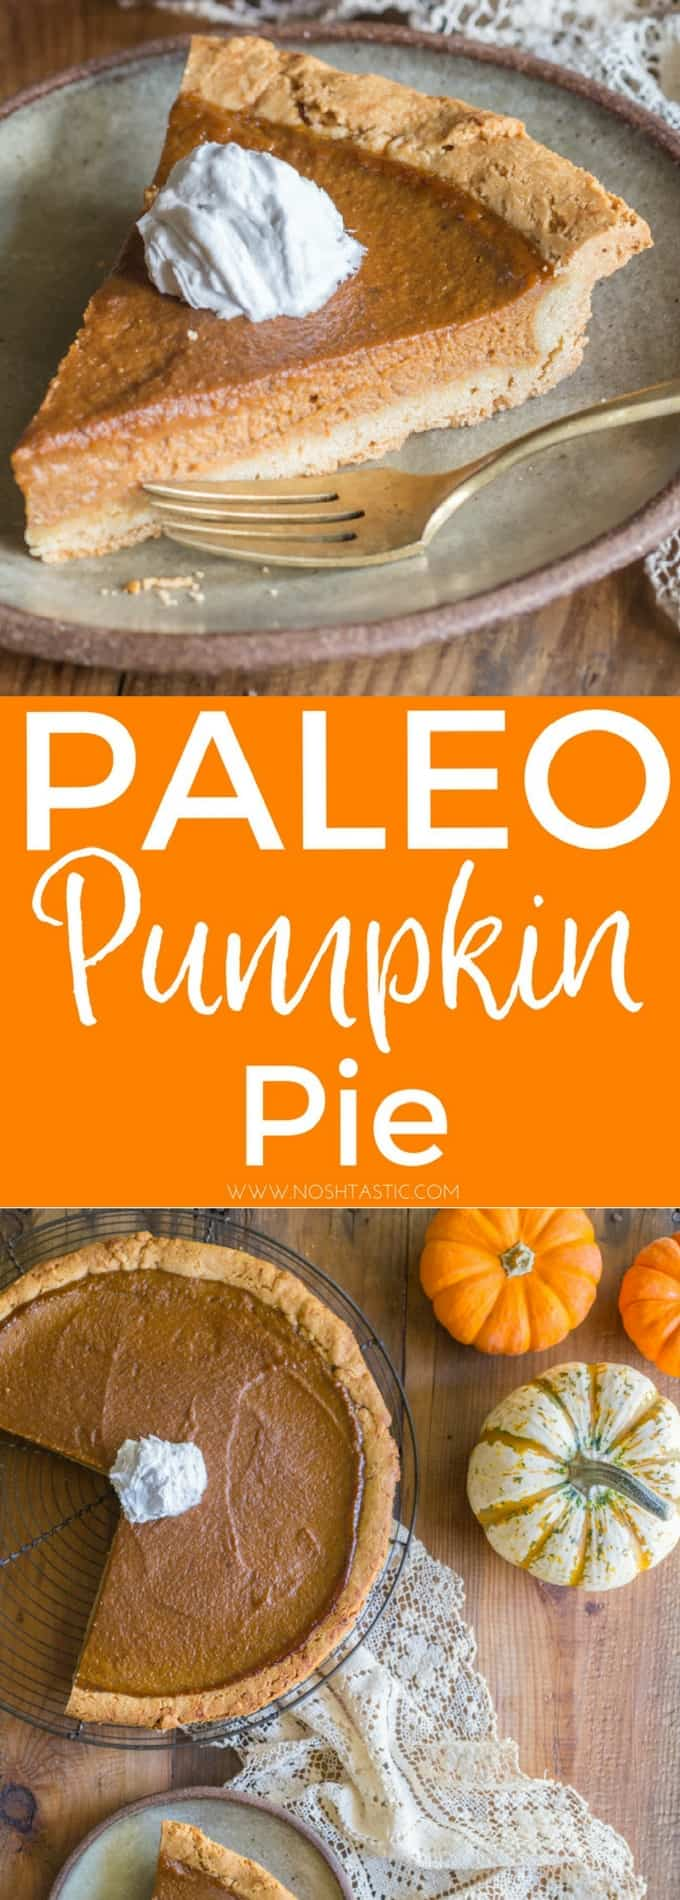 You must try this easy Paleo Pumpkin Pie recipe with a made from scratch Paleo pie Crust too! #glutenfree #paleo #dairyfree #almondflour #paleopie #paleopumpkinpie #paleopiecrust #paleothanksgiving #thanksgiving #healthyeating